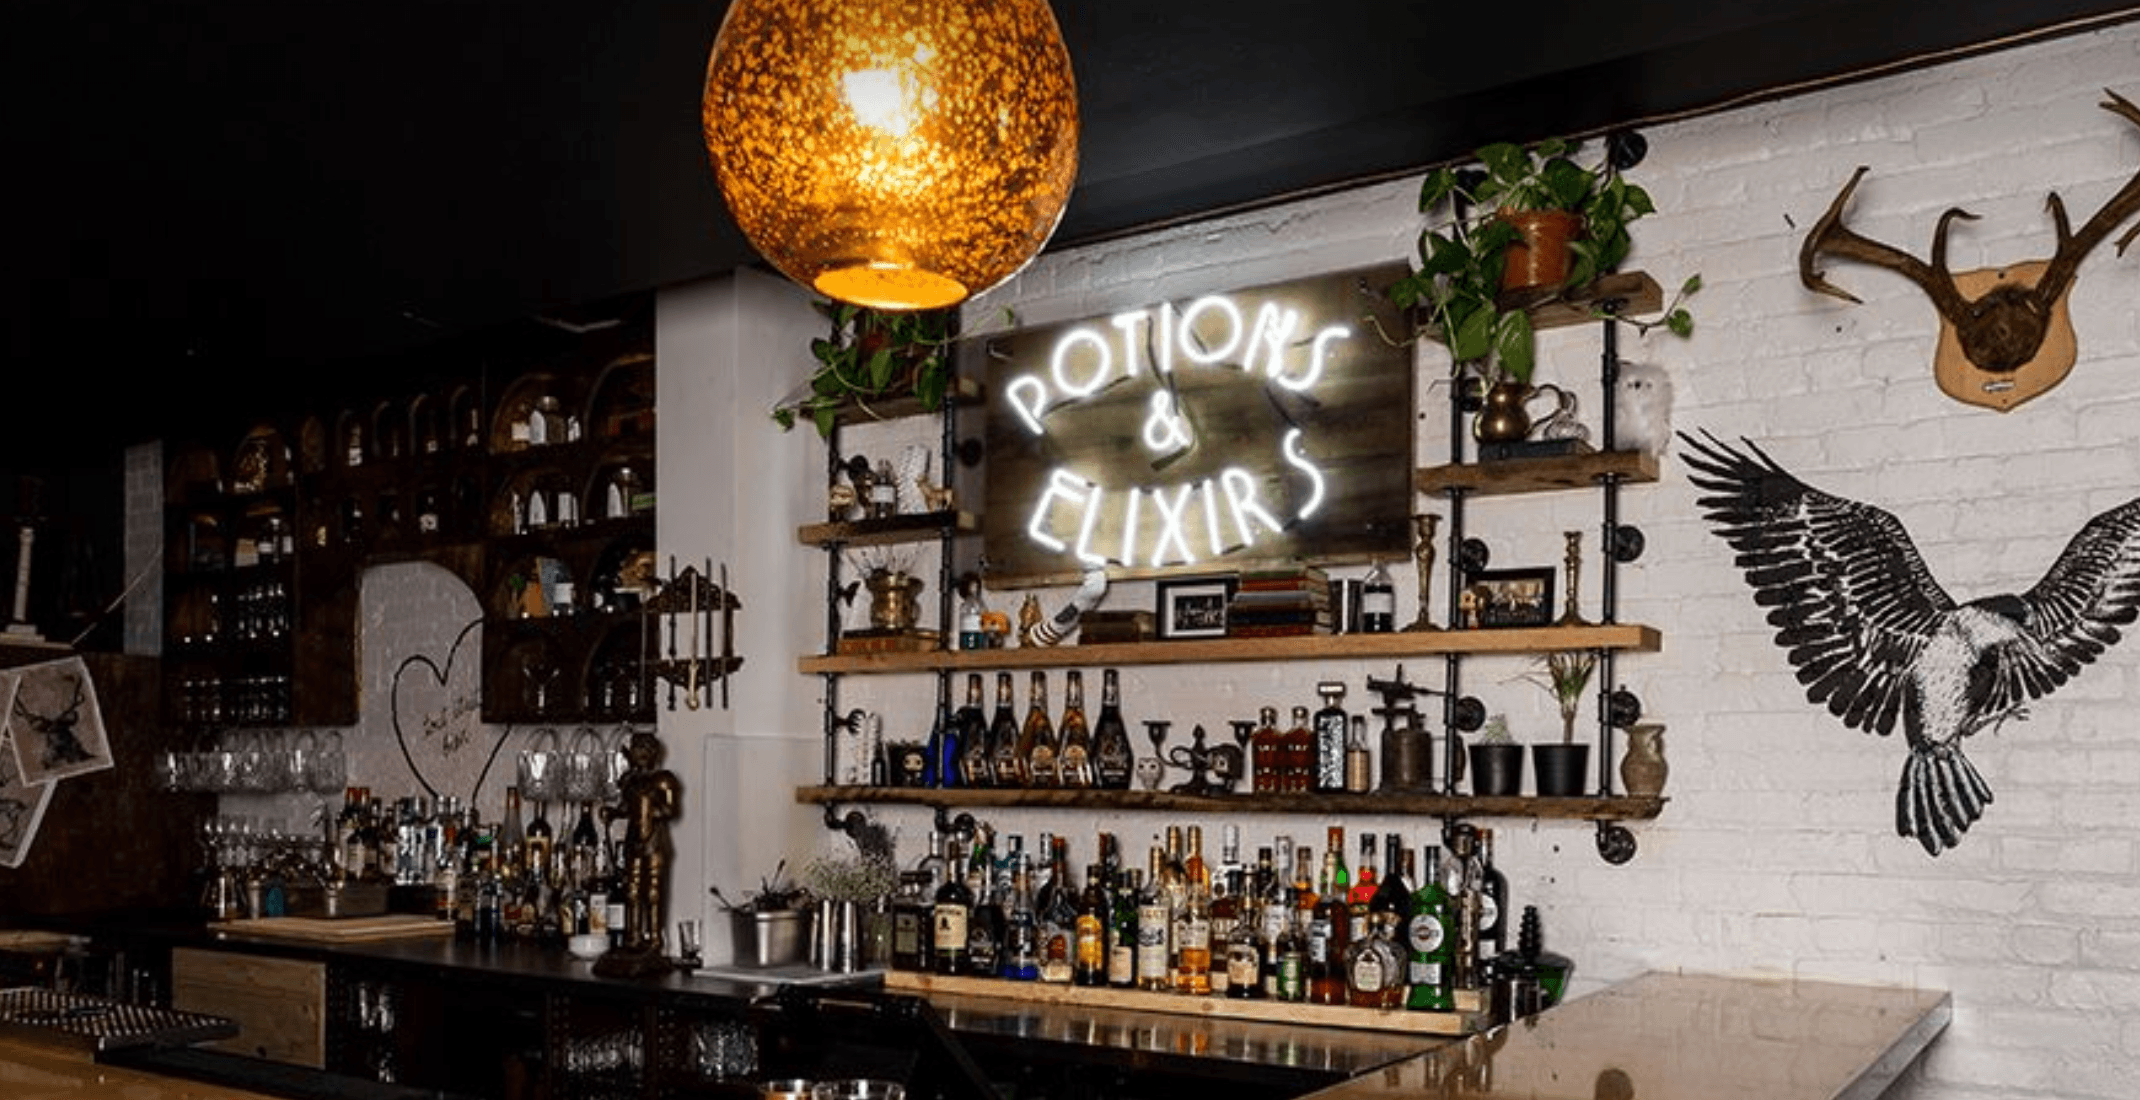 Montreal's Harry Potter-inspired bar is hosting an all night party this weekend